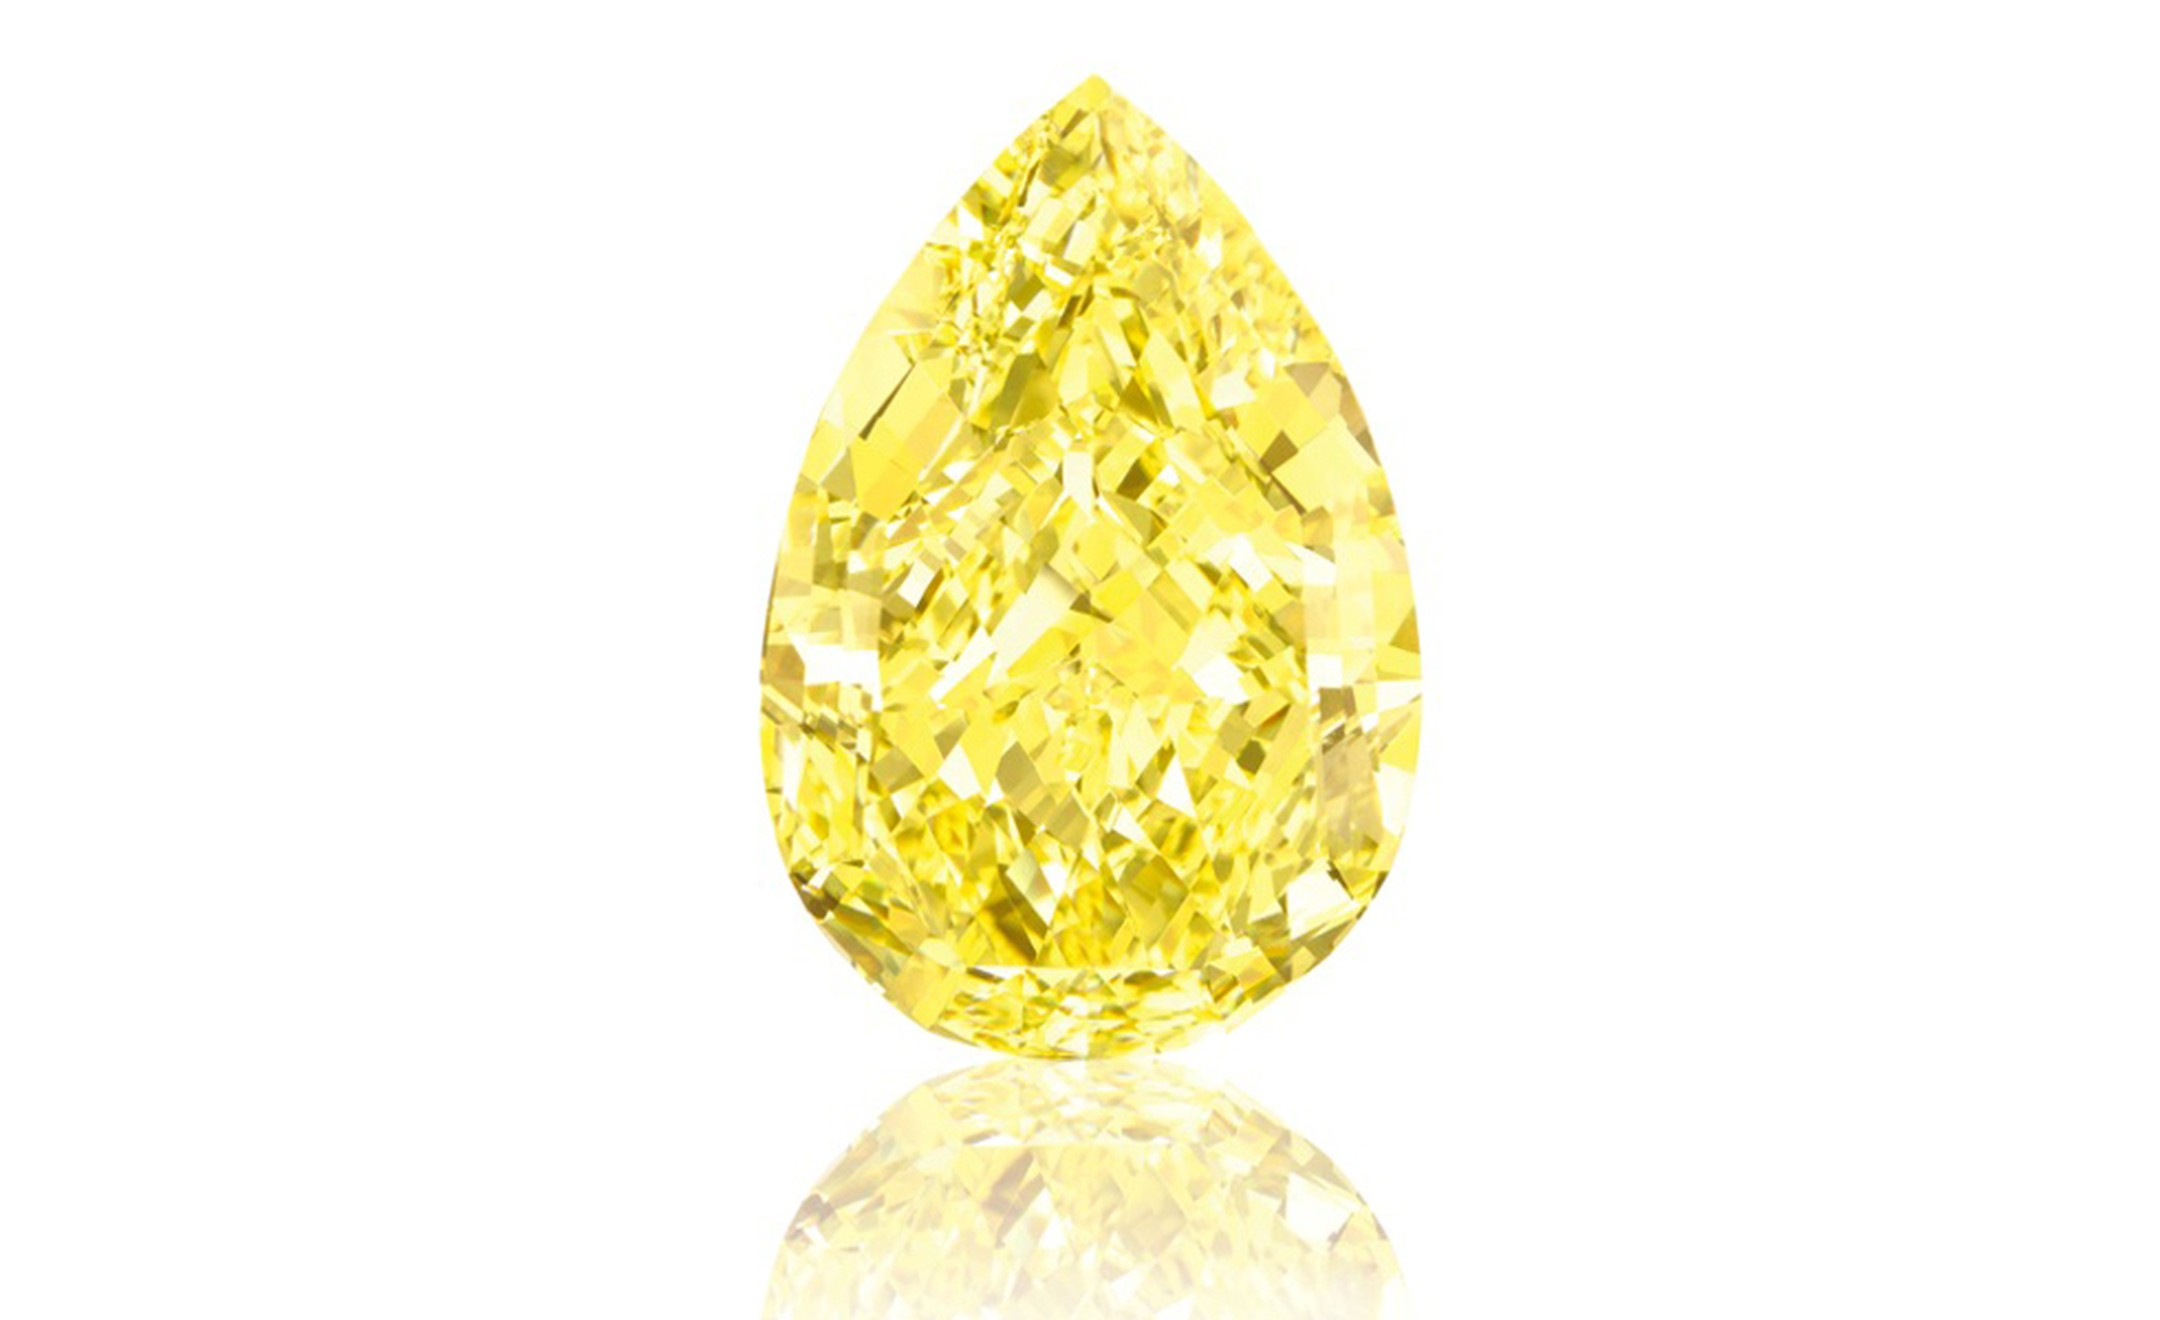 The Sun-Drop Diamond. 110.03 Carats. Graded Fancy Vivid Yellow, the highest colour grading for a yellow diamond, by the Gemological Institute of America (GIA). Estimate: $11-15 million